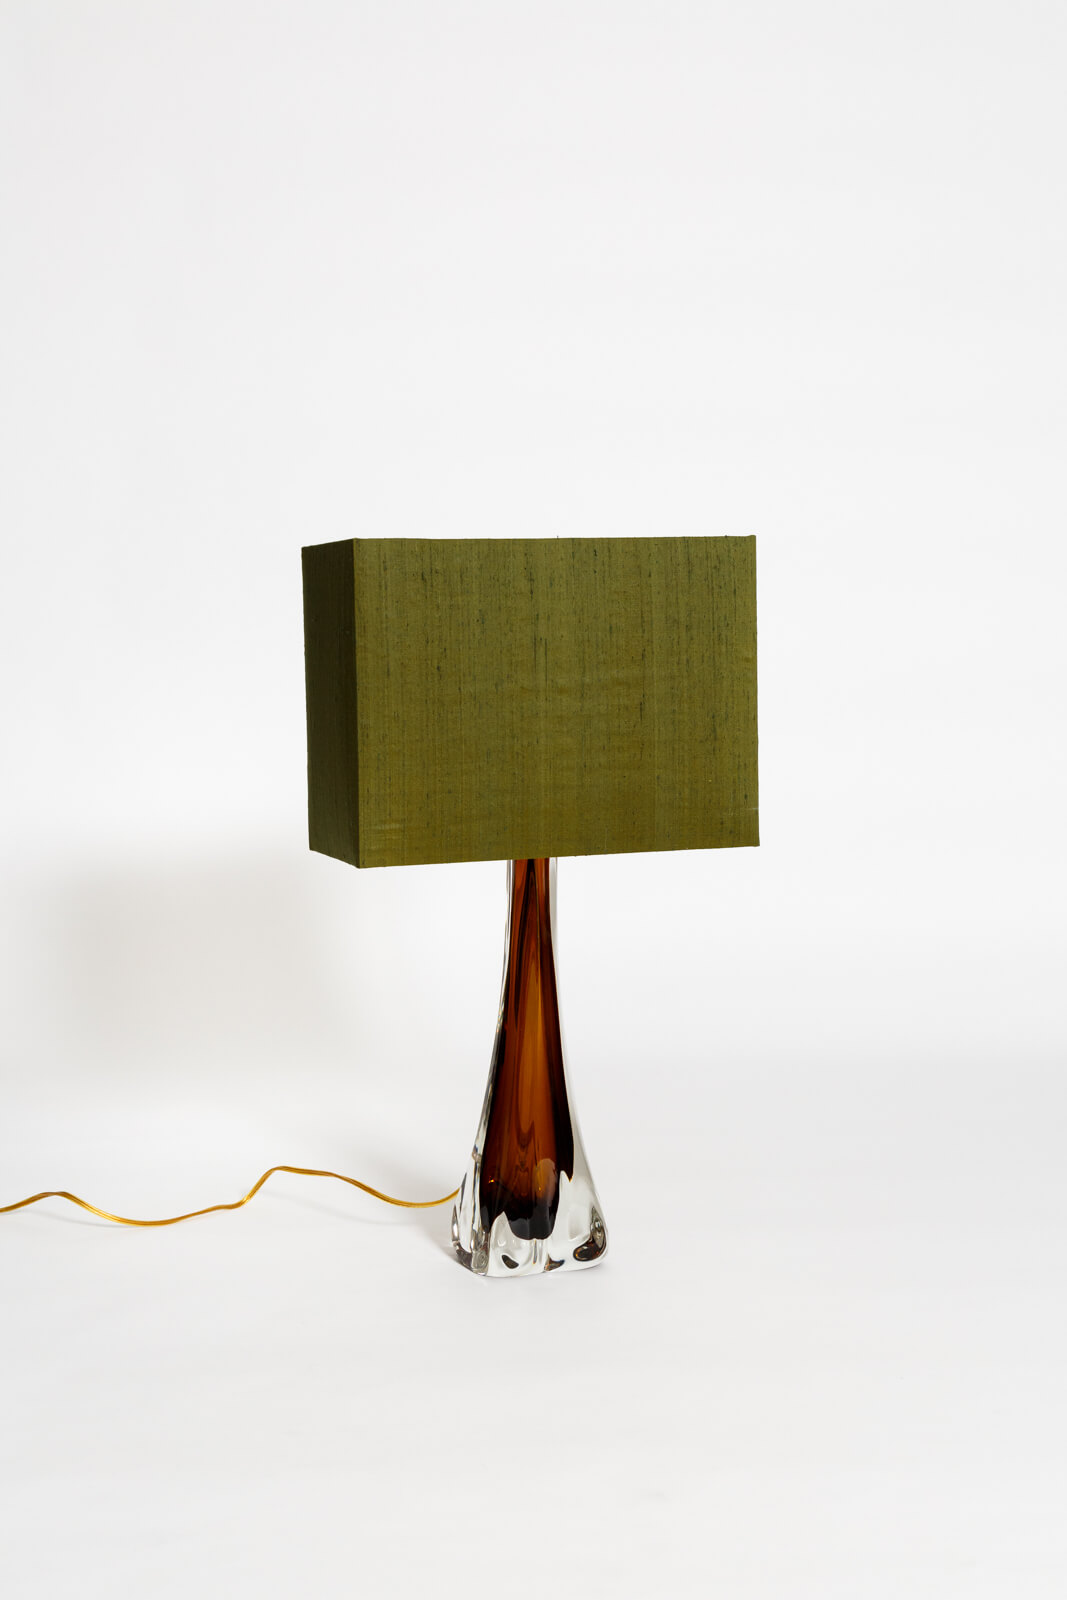 Table lamp by Barovier & Toso for sale